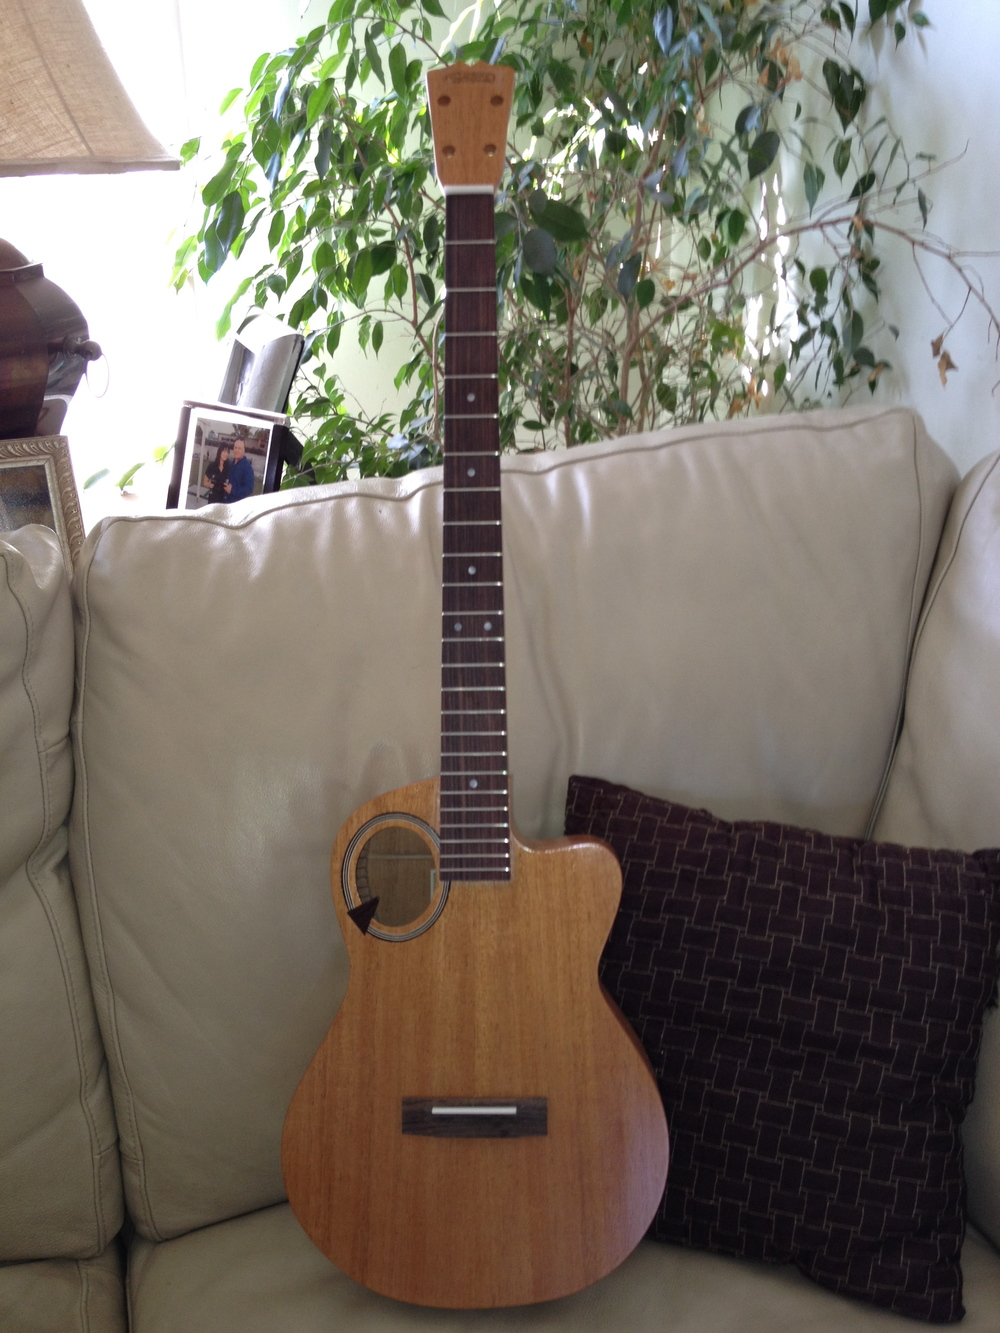 Q model custom XL stretch  neck baritone ukuele